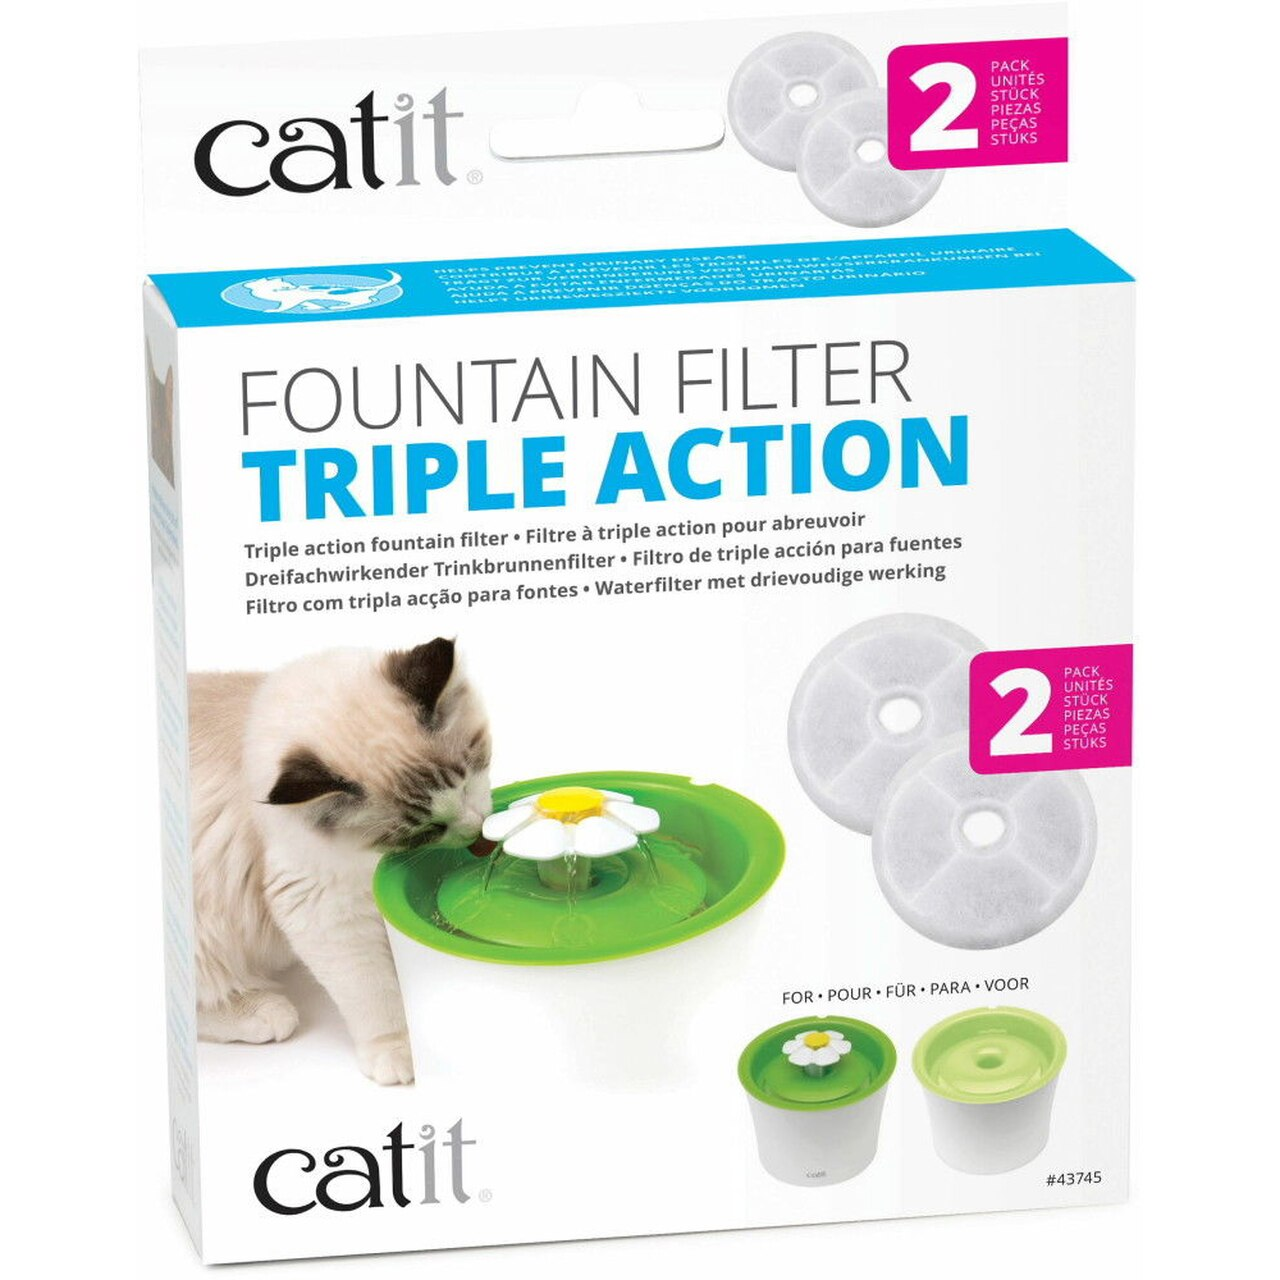 Catit Fountain Triple Action Filters Image